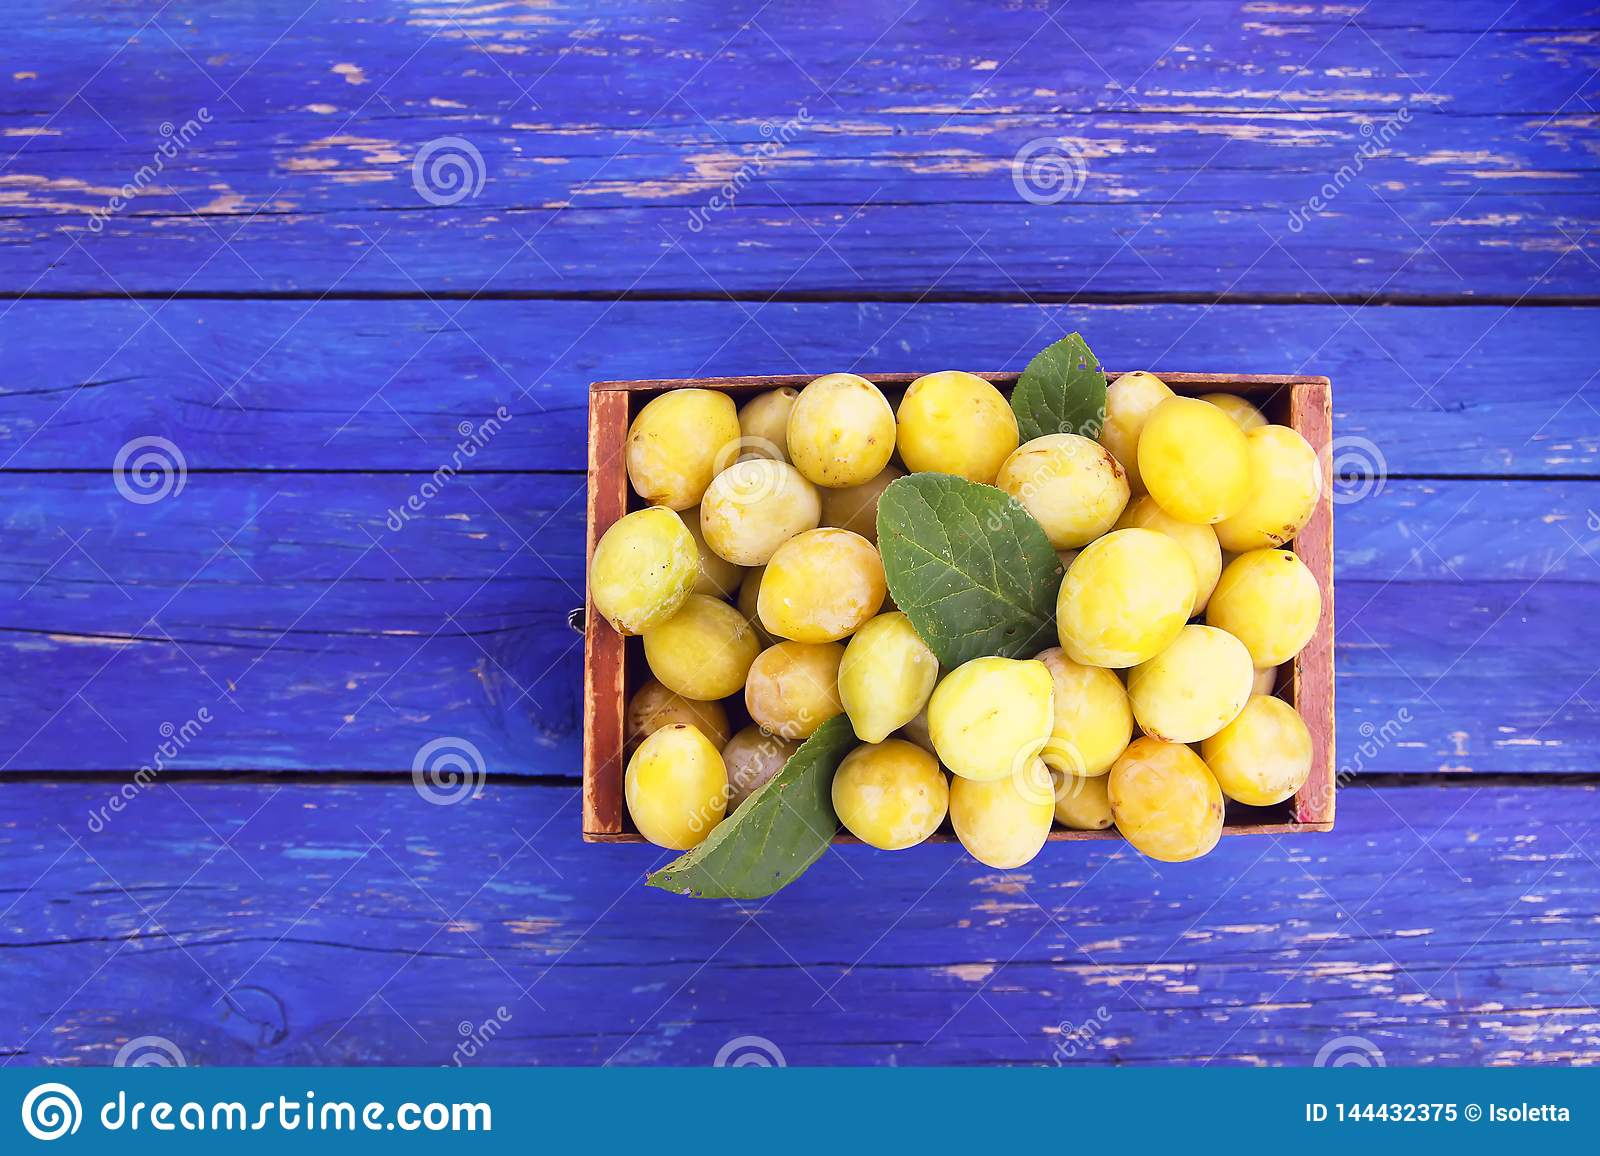 Fresh yellow plums. Ripe fruits in a wooden box on blue boards